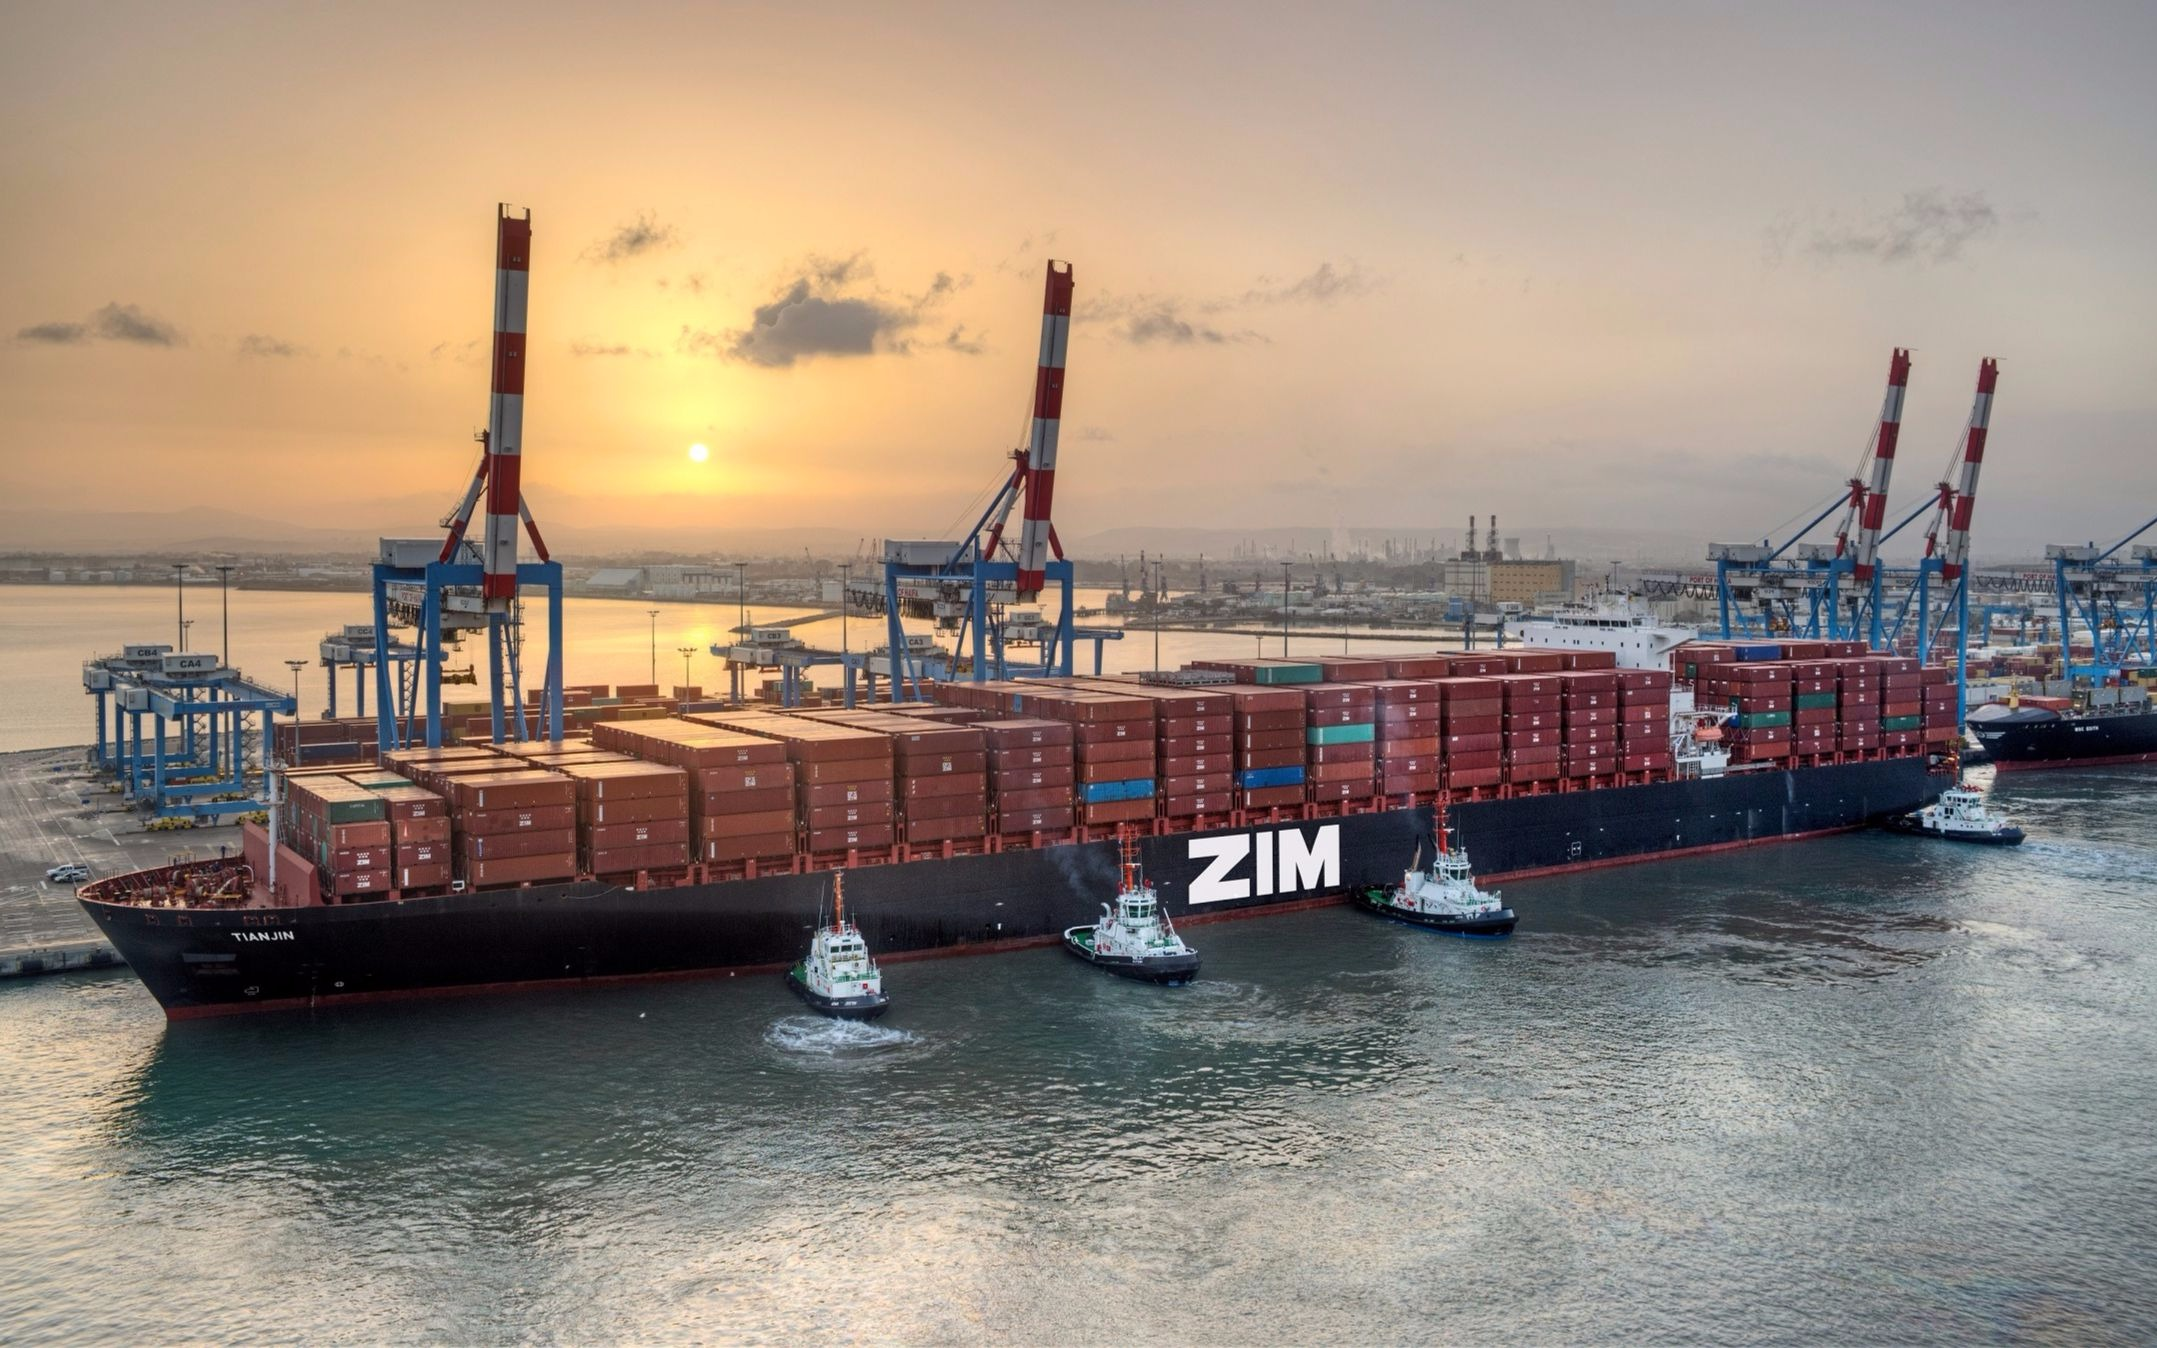 Israel's Zim strikes alliance with global shipping giants to share